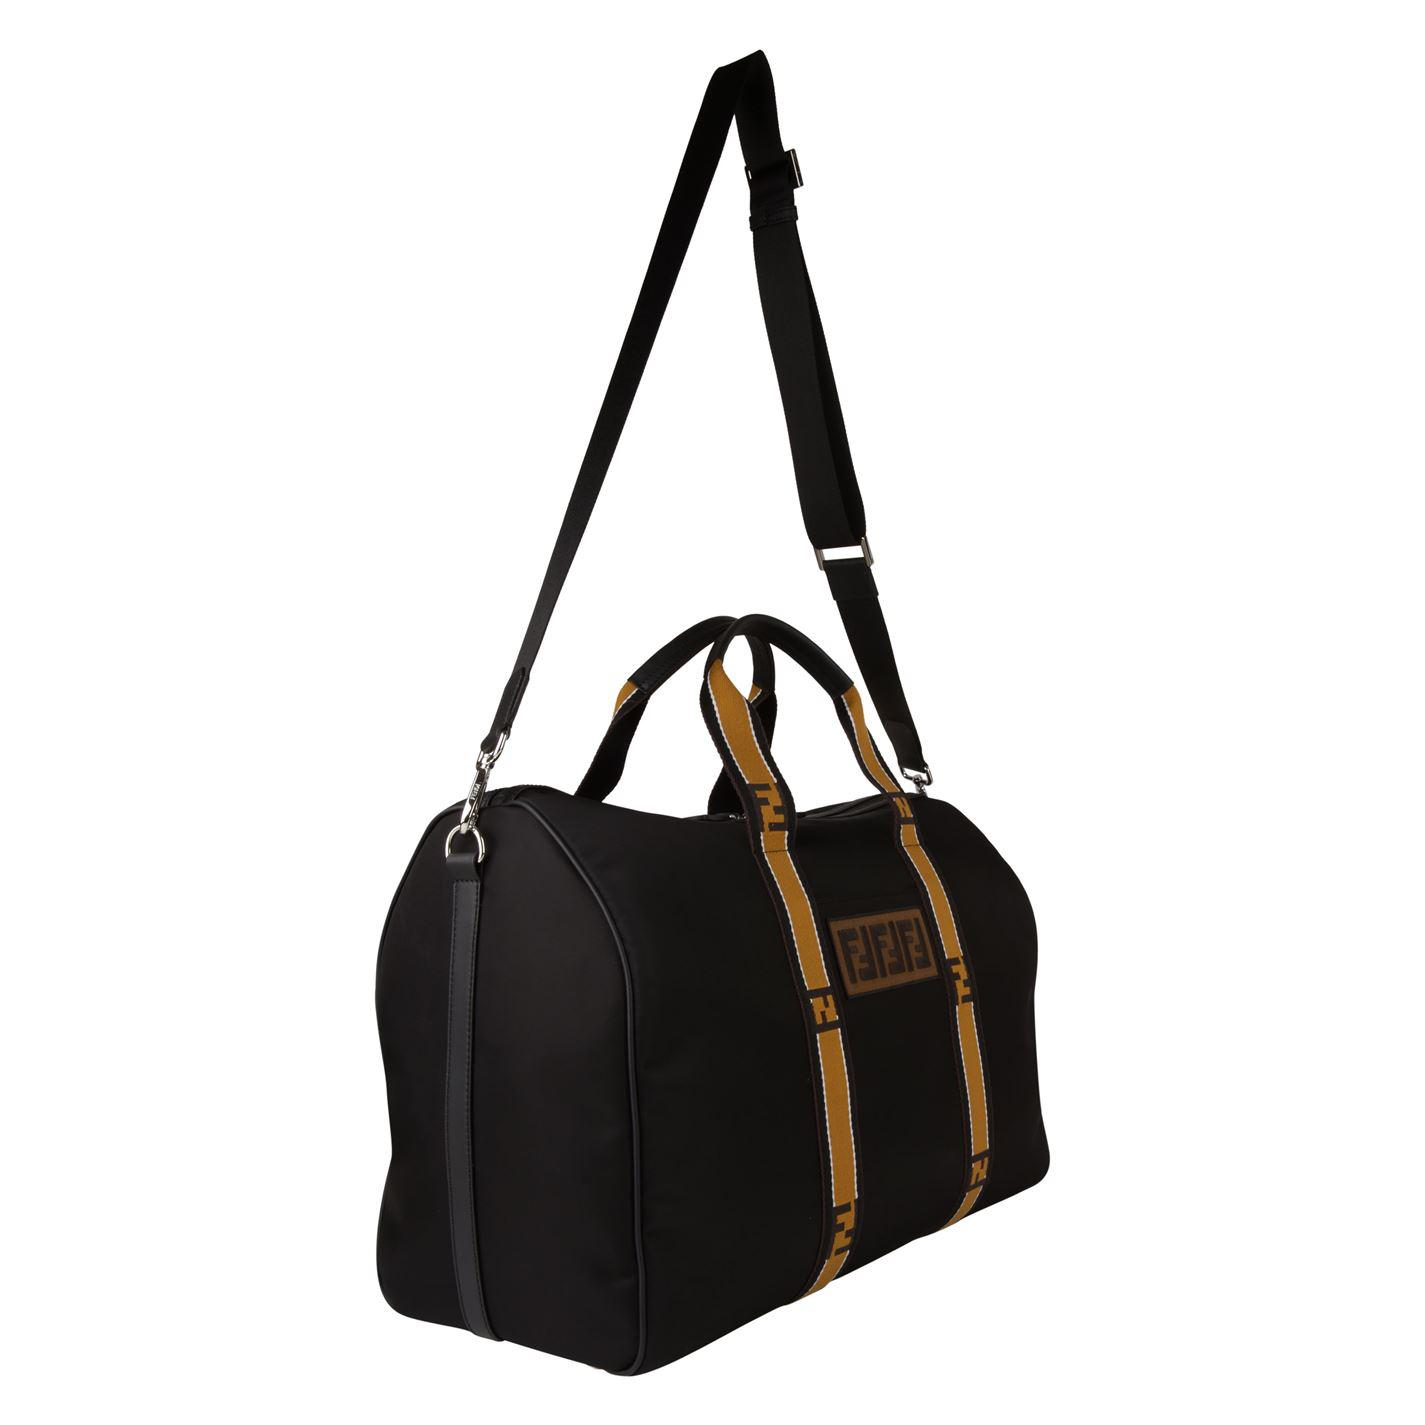 78664ccd4beb Lyst - Fendi Logo Tape Duffle Bag in Black for Men